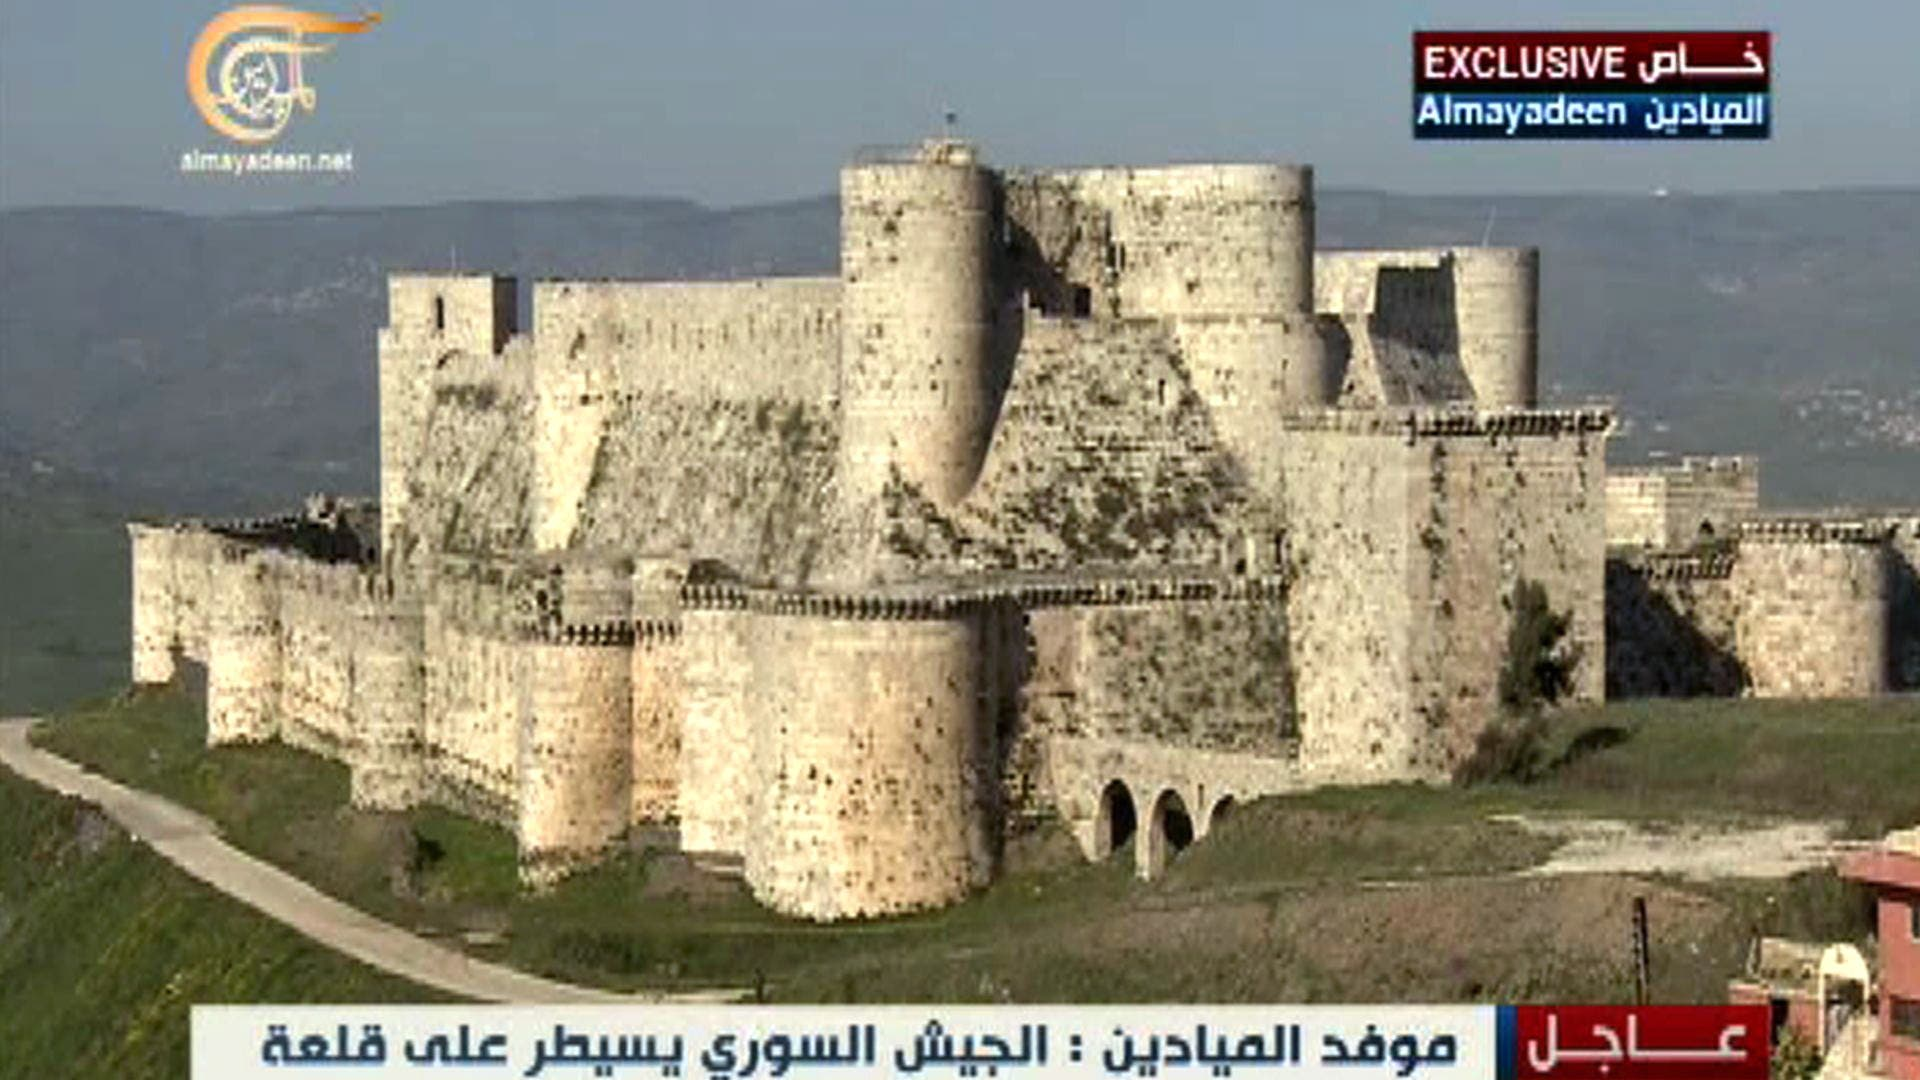 An image grab taken from Lebanon's Al-Mayadeen TV on March 20, 2014 shows the famed Crusader fort of Krak des Chevaliers, which according to Syrian state television, was taken by Syrian regime forces. (AFP)